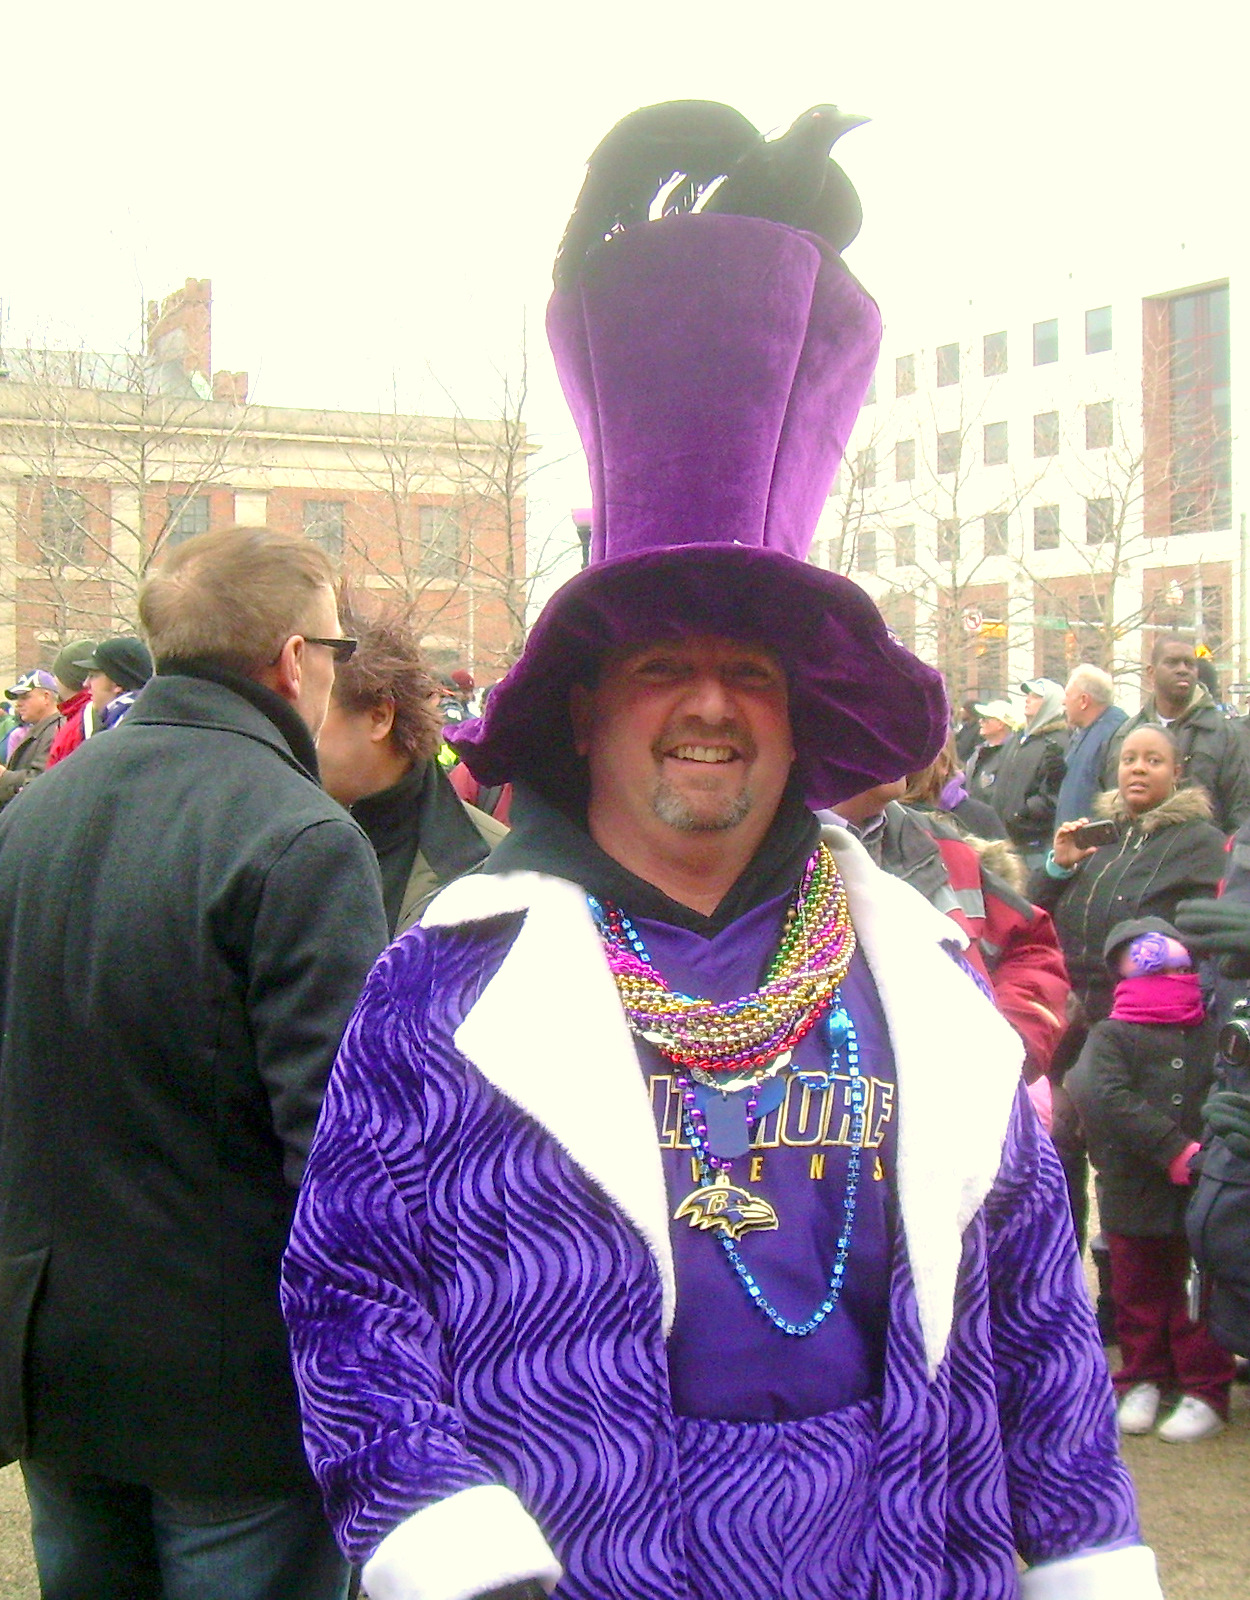 Walt Griffin, 50, from South Baltimore celebrates in purple plumage. (Photo by Gerald Neily)